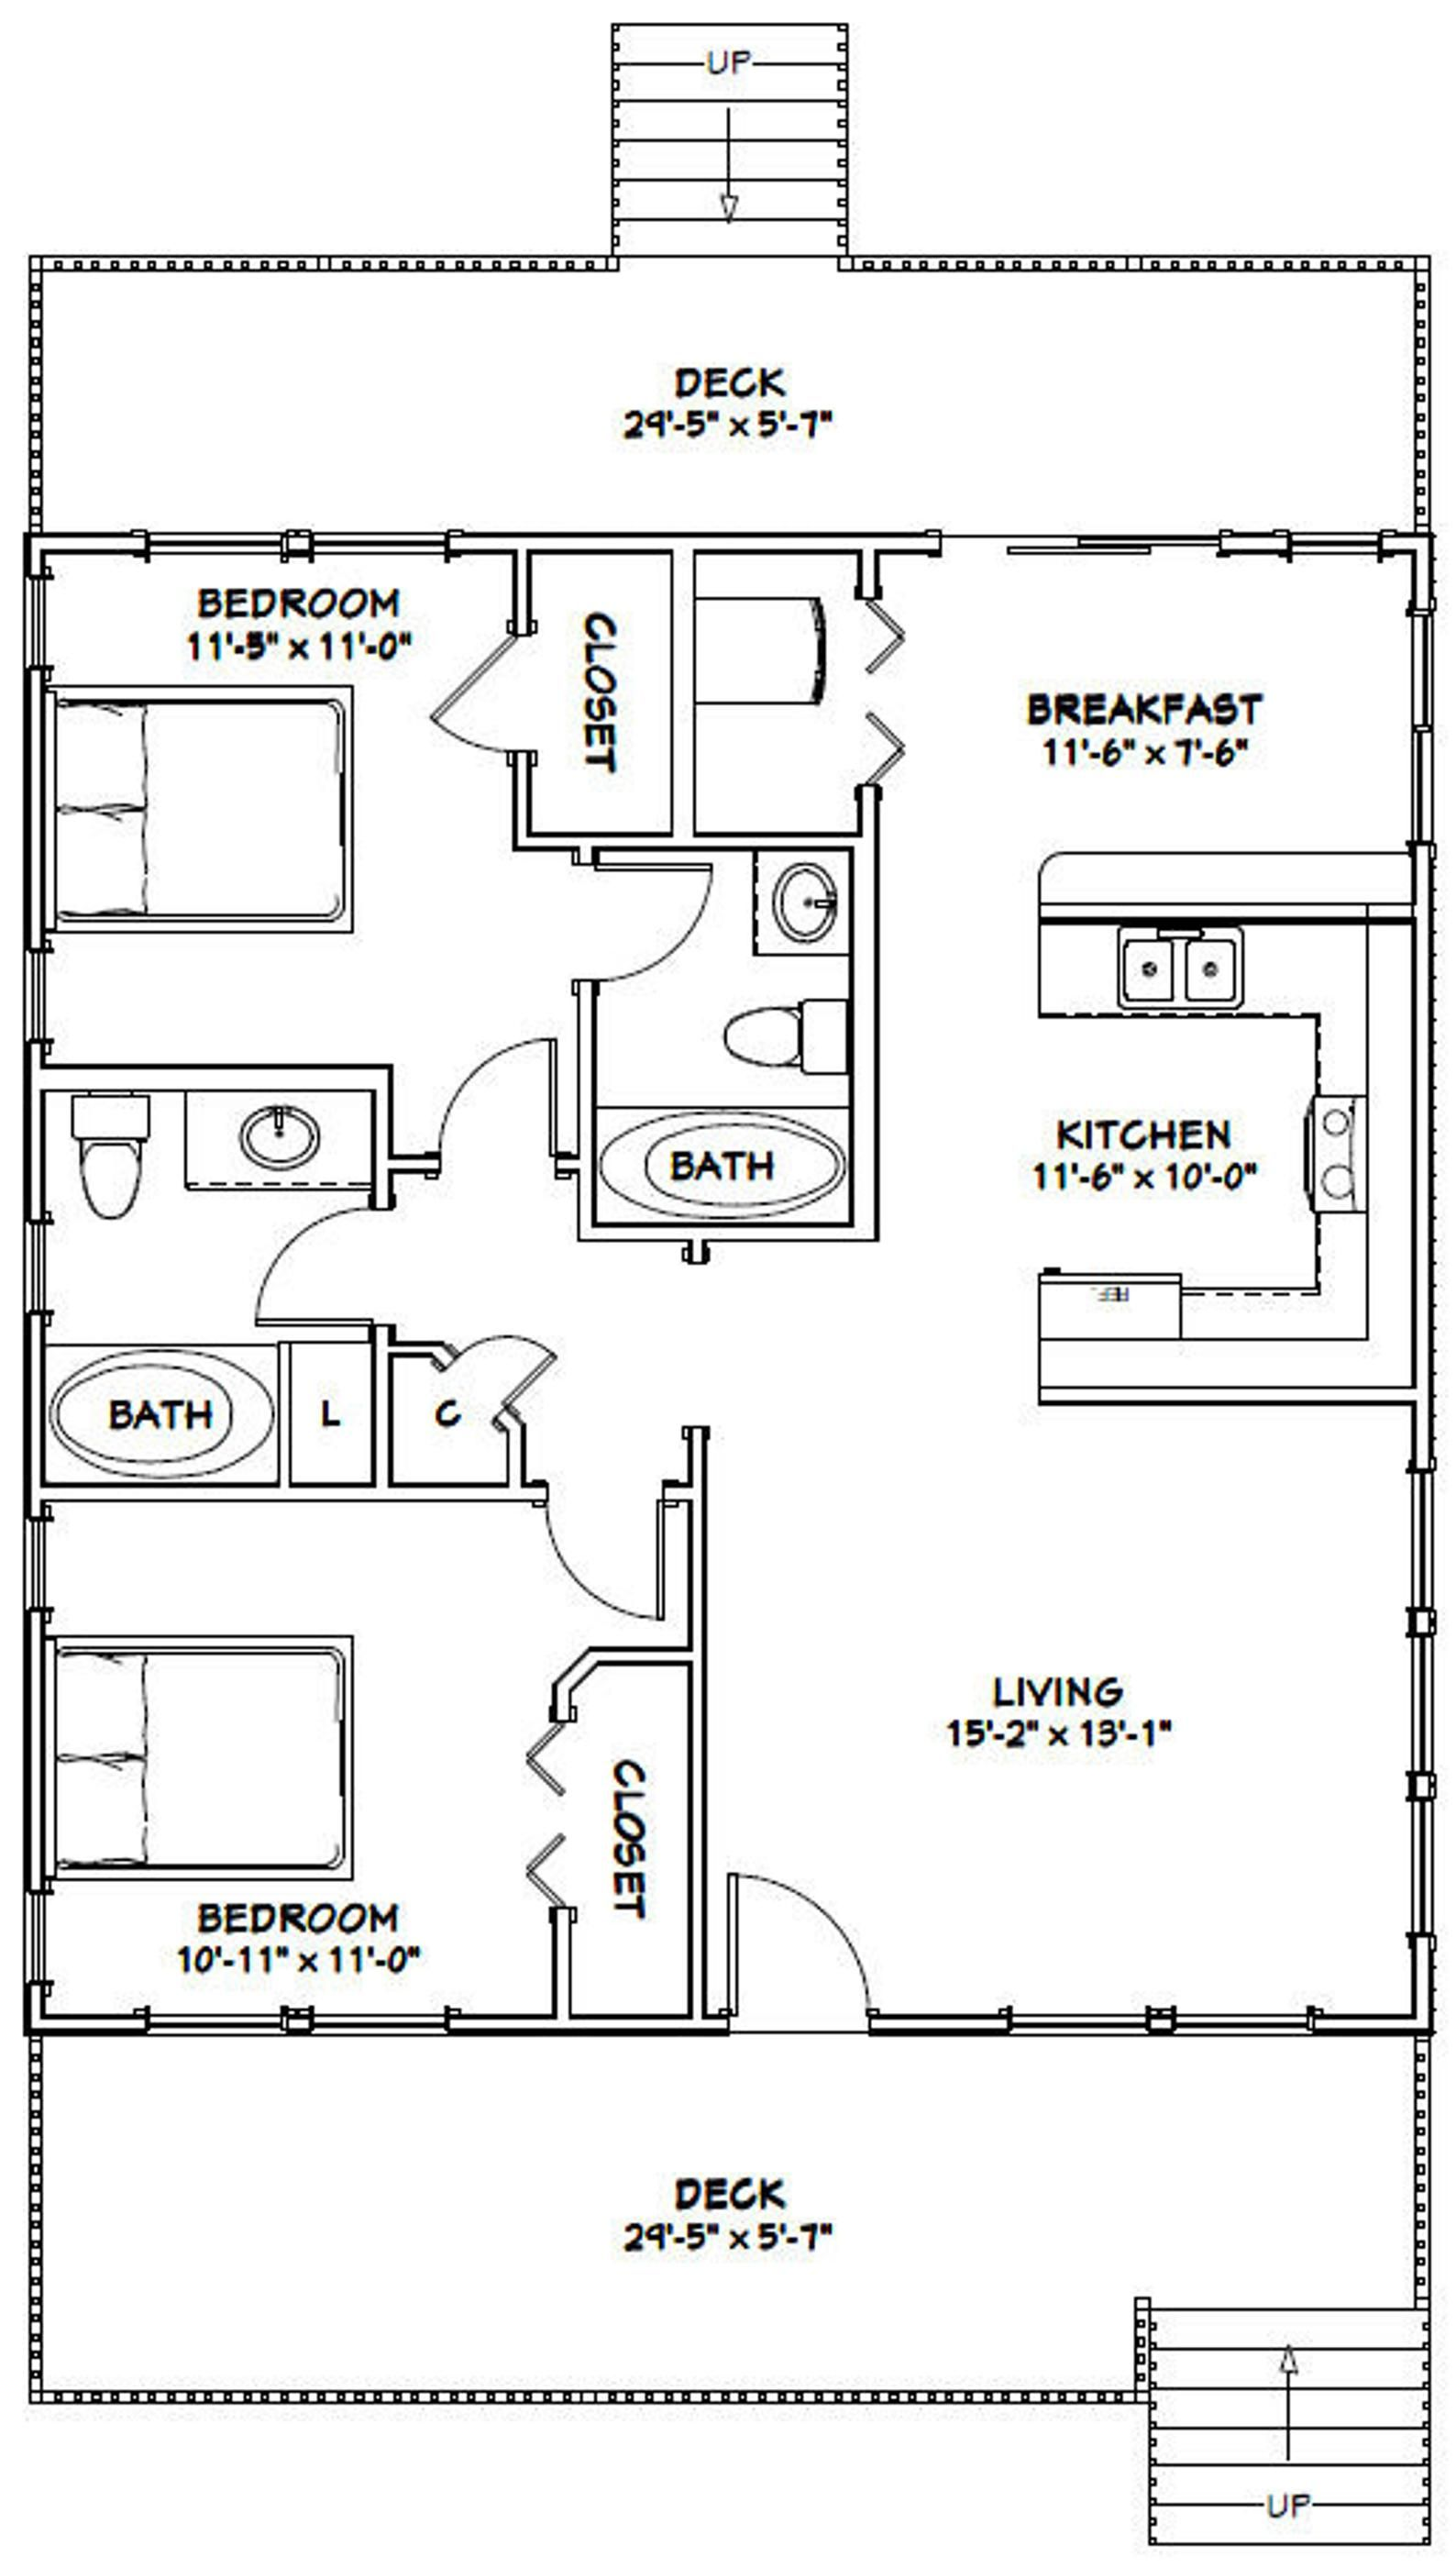 30x32 House 2 Bedroom 2 Bath 960 Sq Ft Pdf Floor Plan Etsy Tiny House Floor Plans Small House Floor Plans Cabin Floor Plans